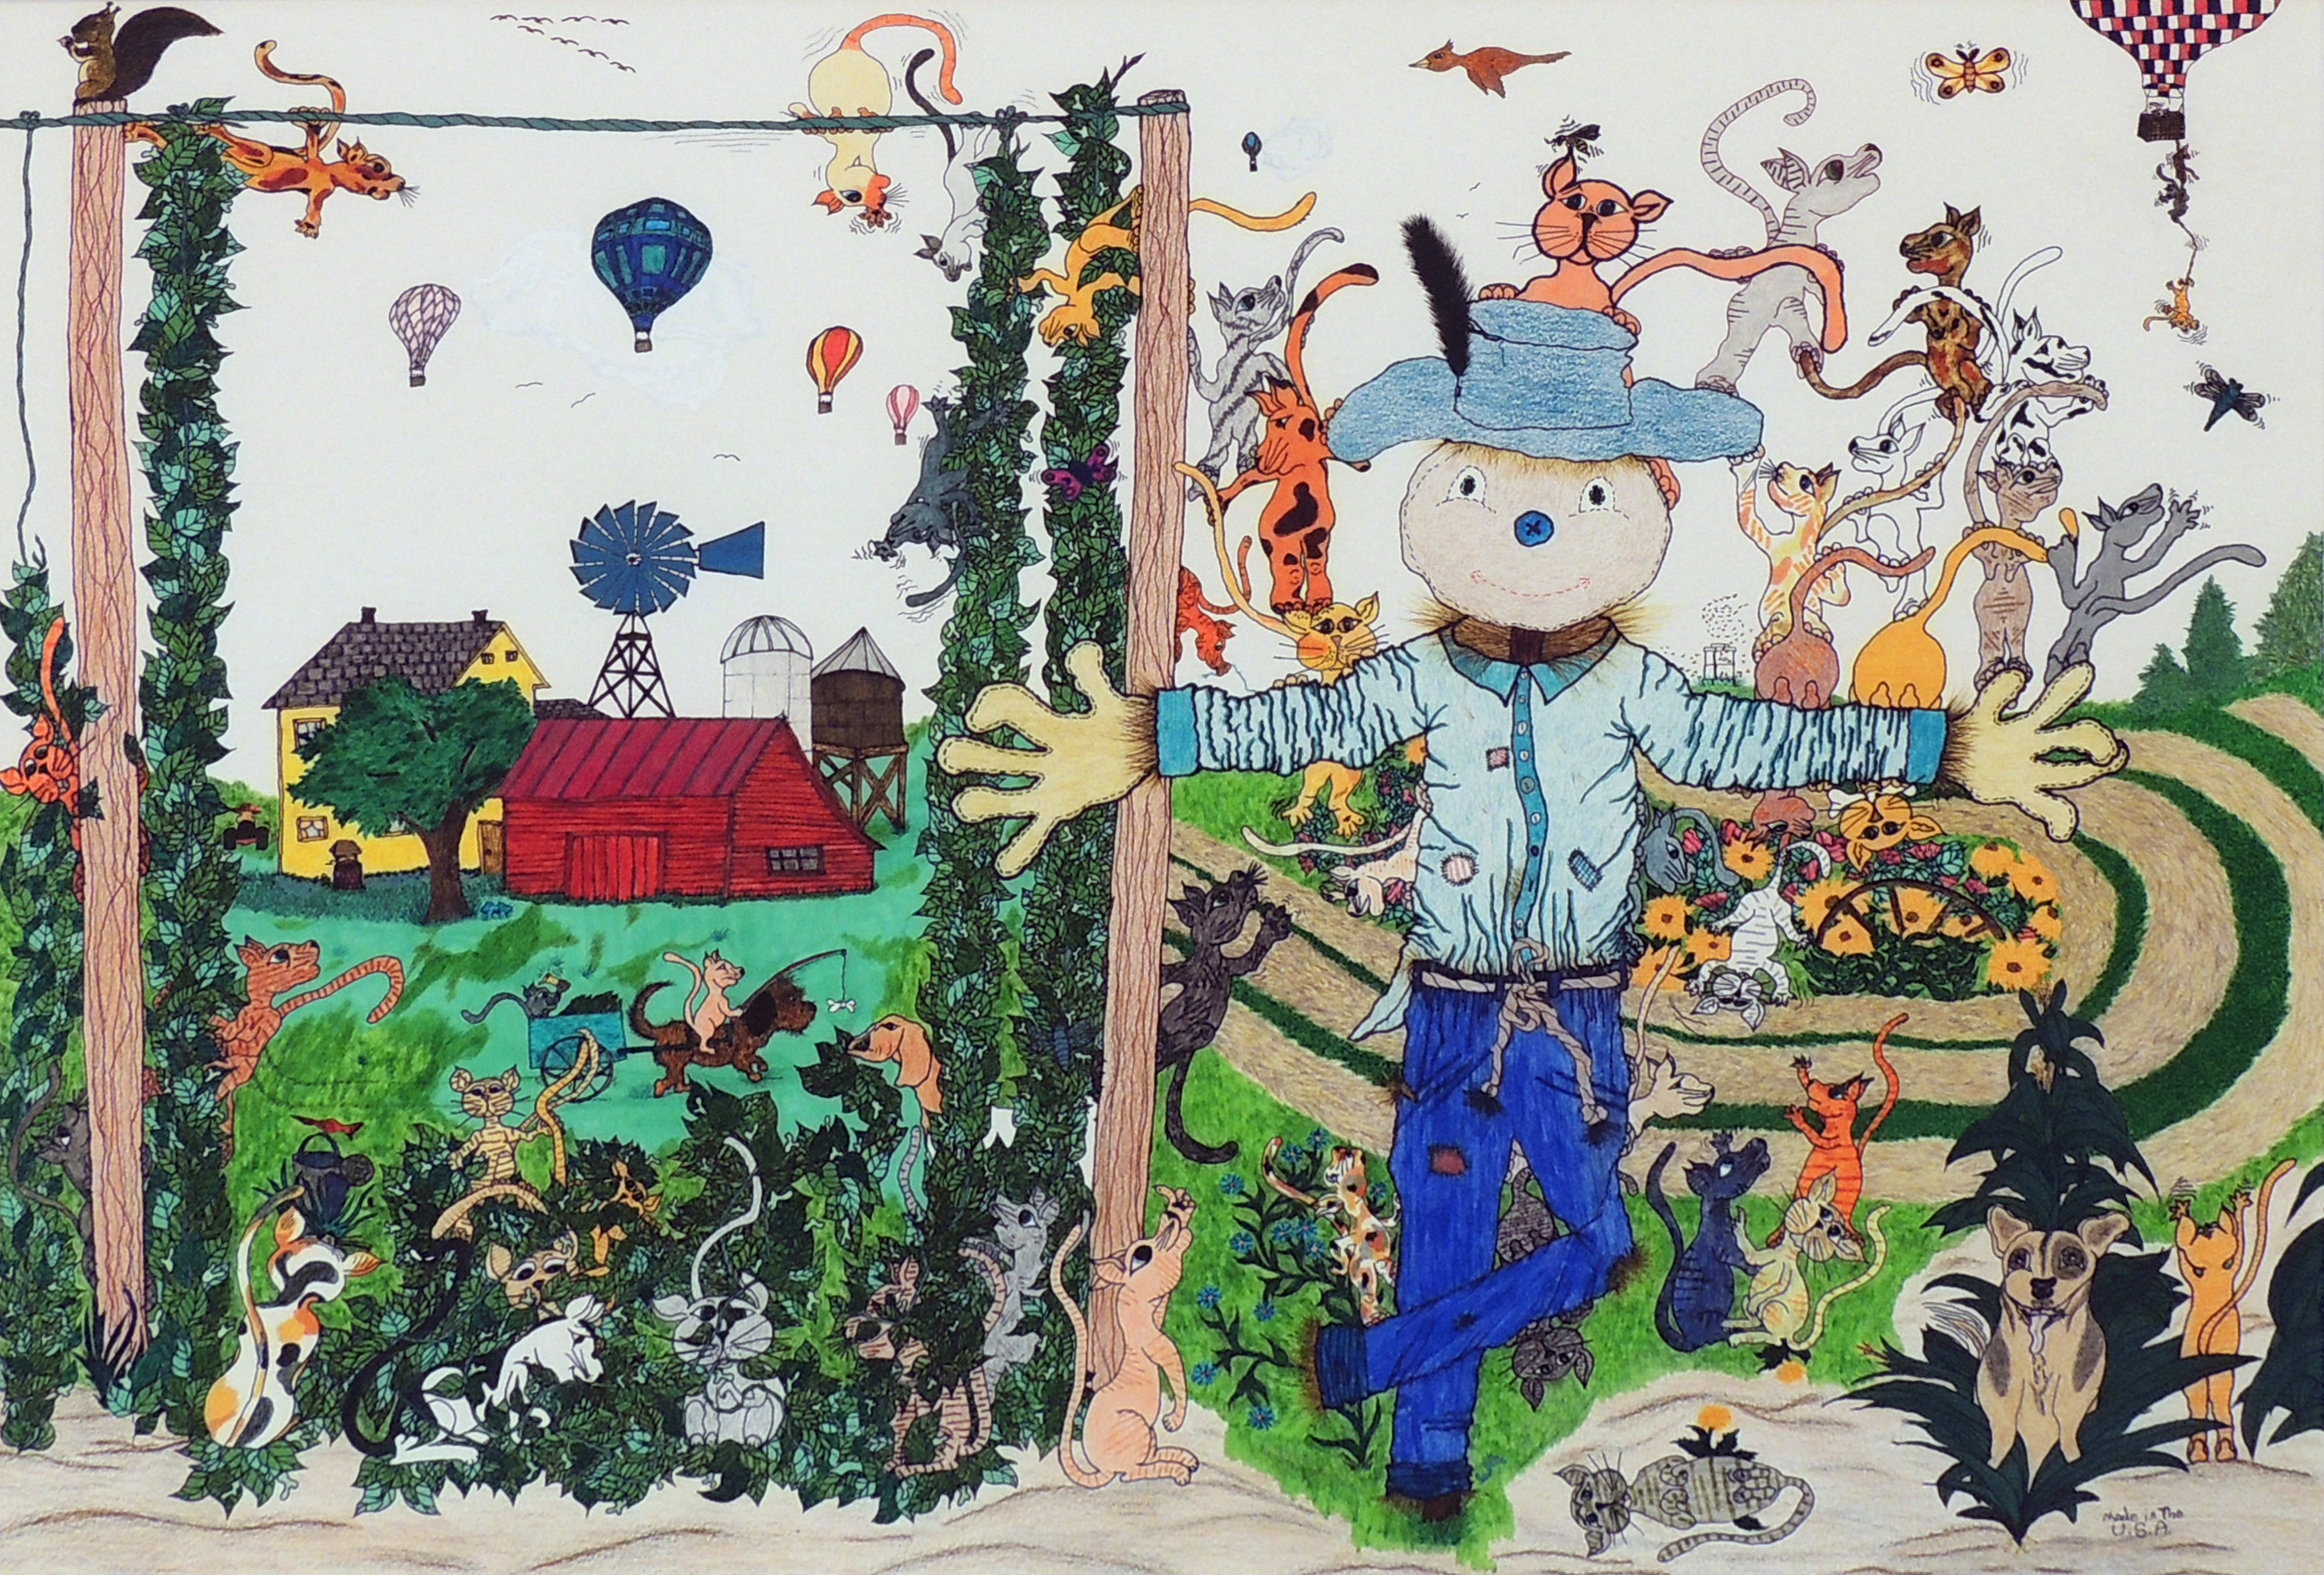 Wanda M. Gancarz | COUNTRY RENDEZVOUS | Colored pencil and marker